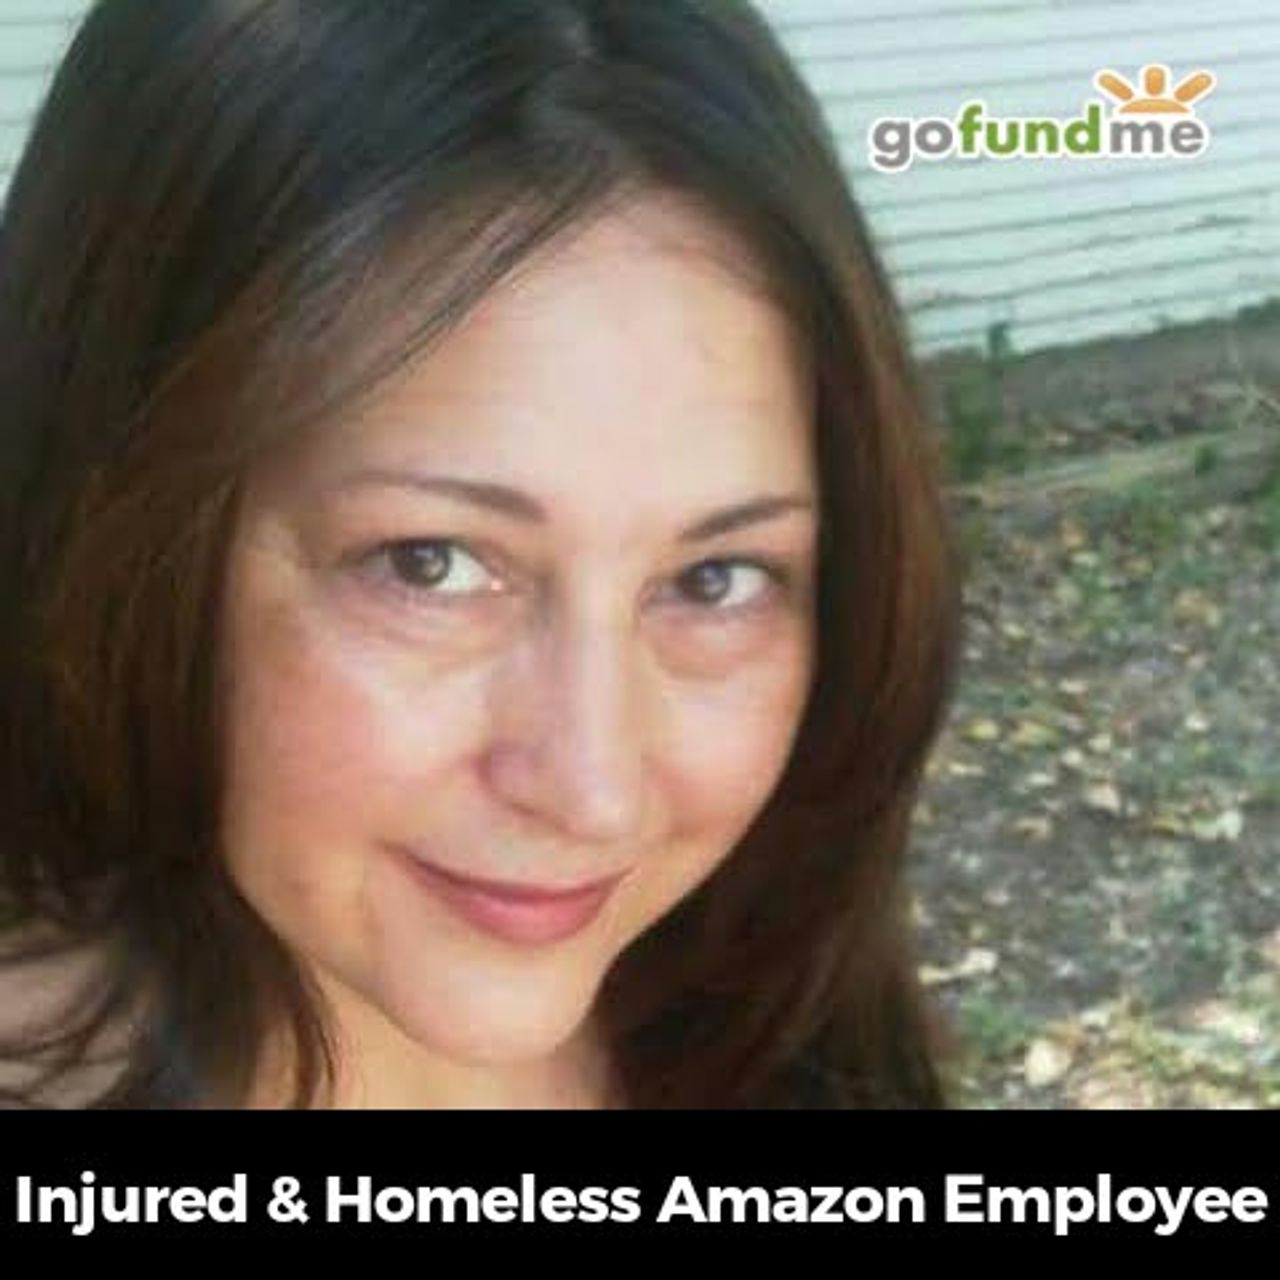 Injured homeless Amazon worker Tammy Edgar